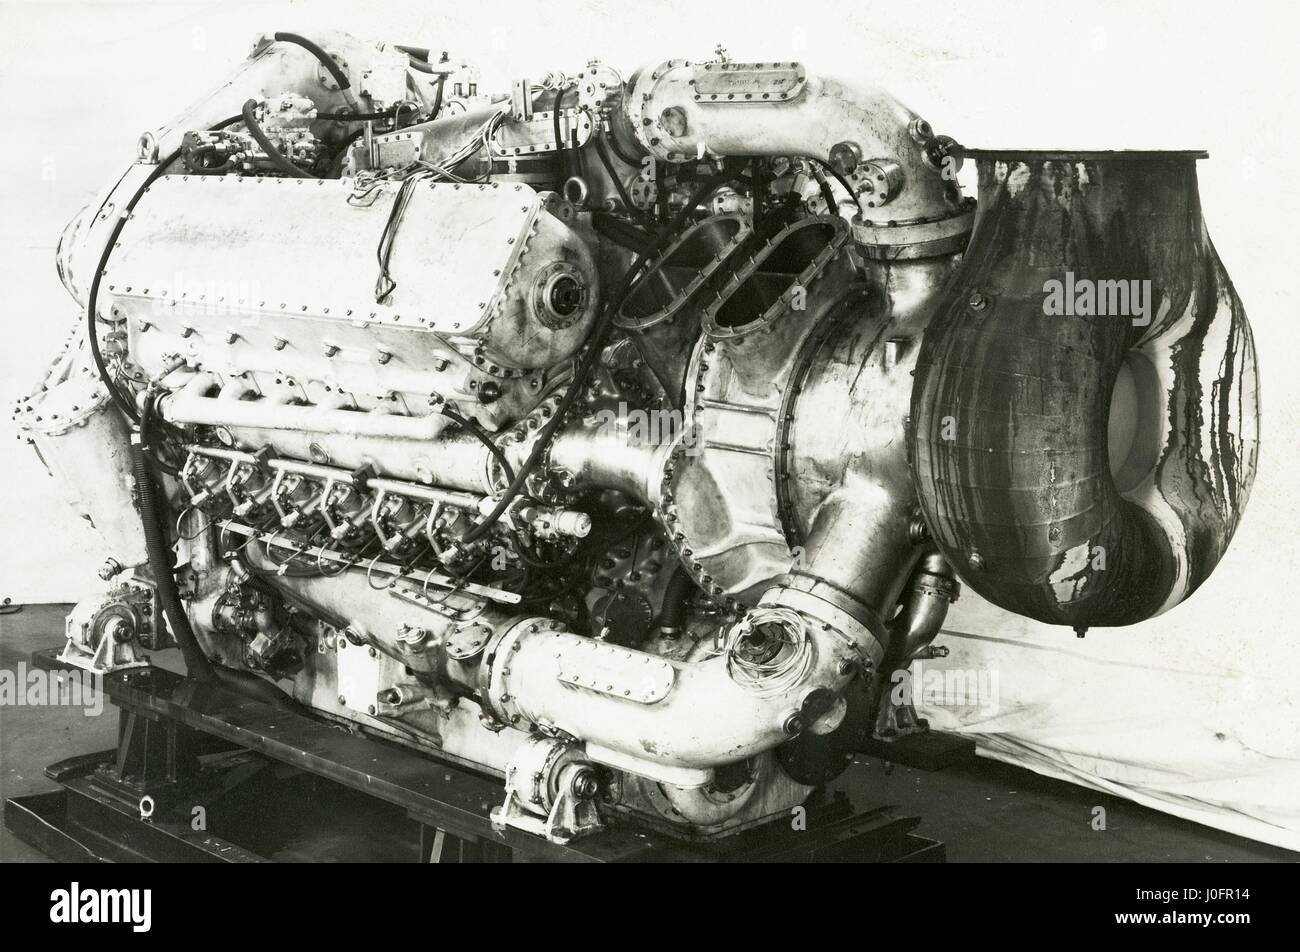 Napier Deltic Marine MTB engine, geared turbo blown - Stock Image